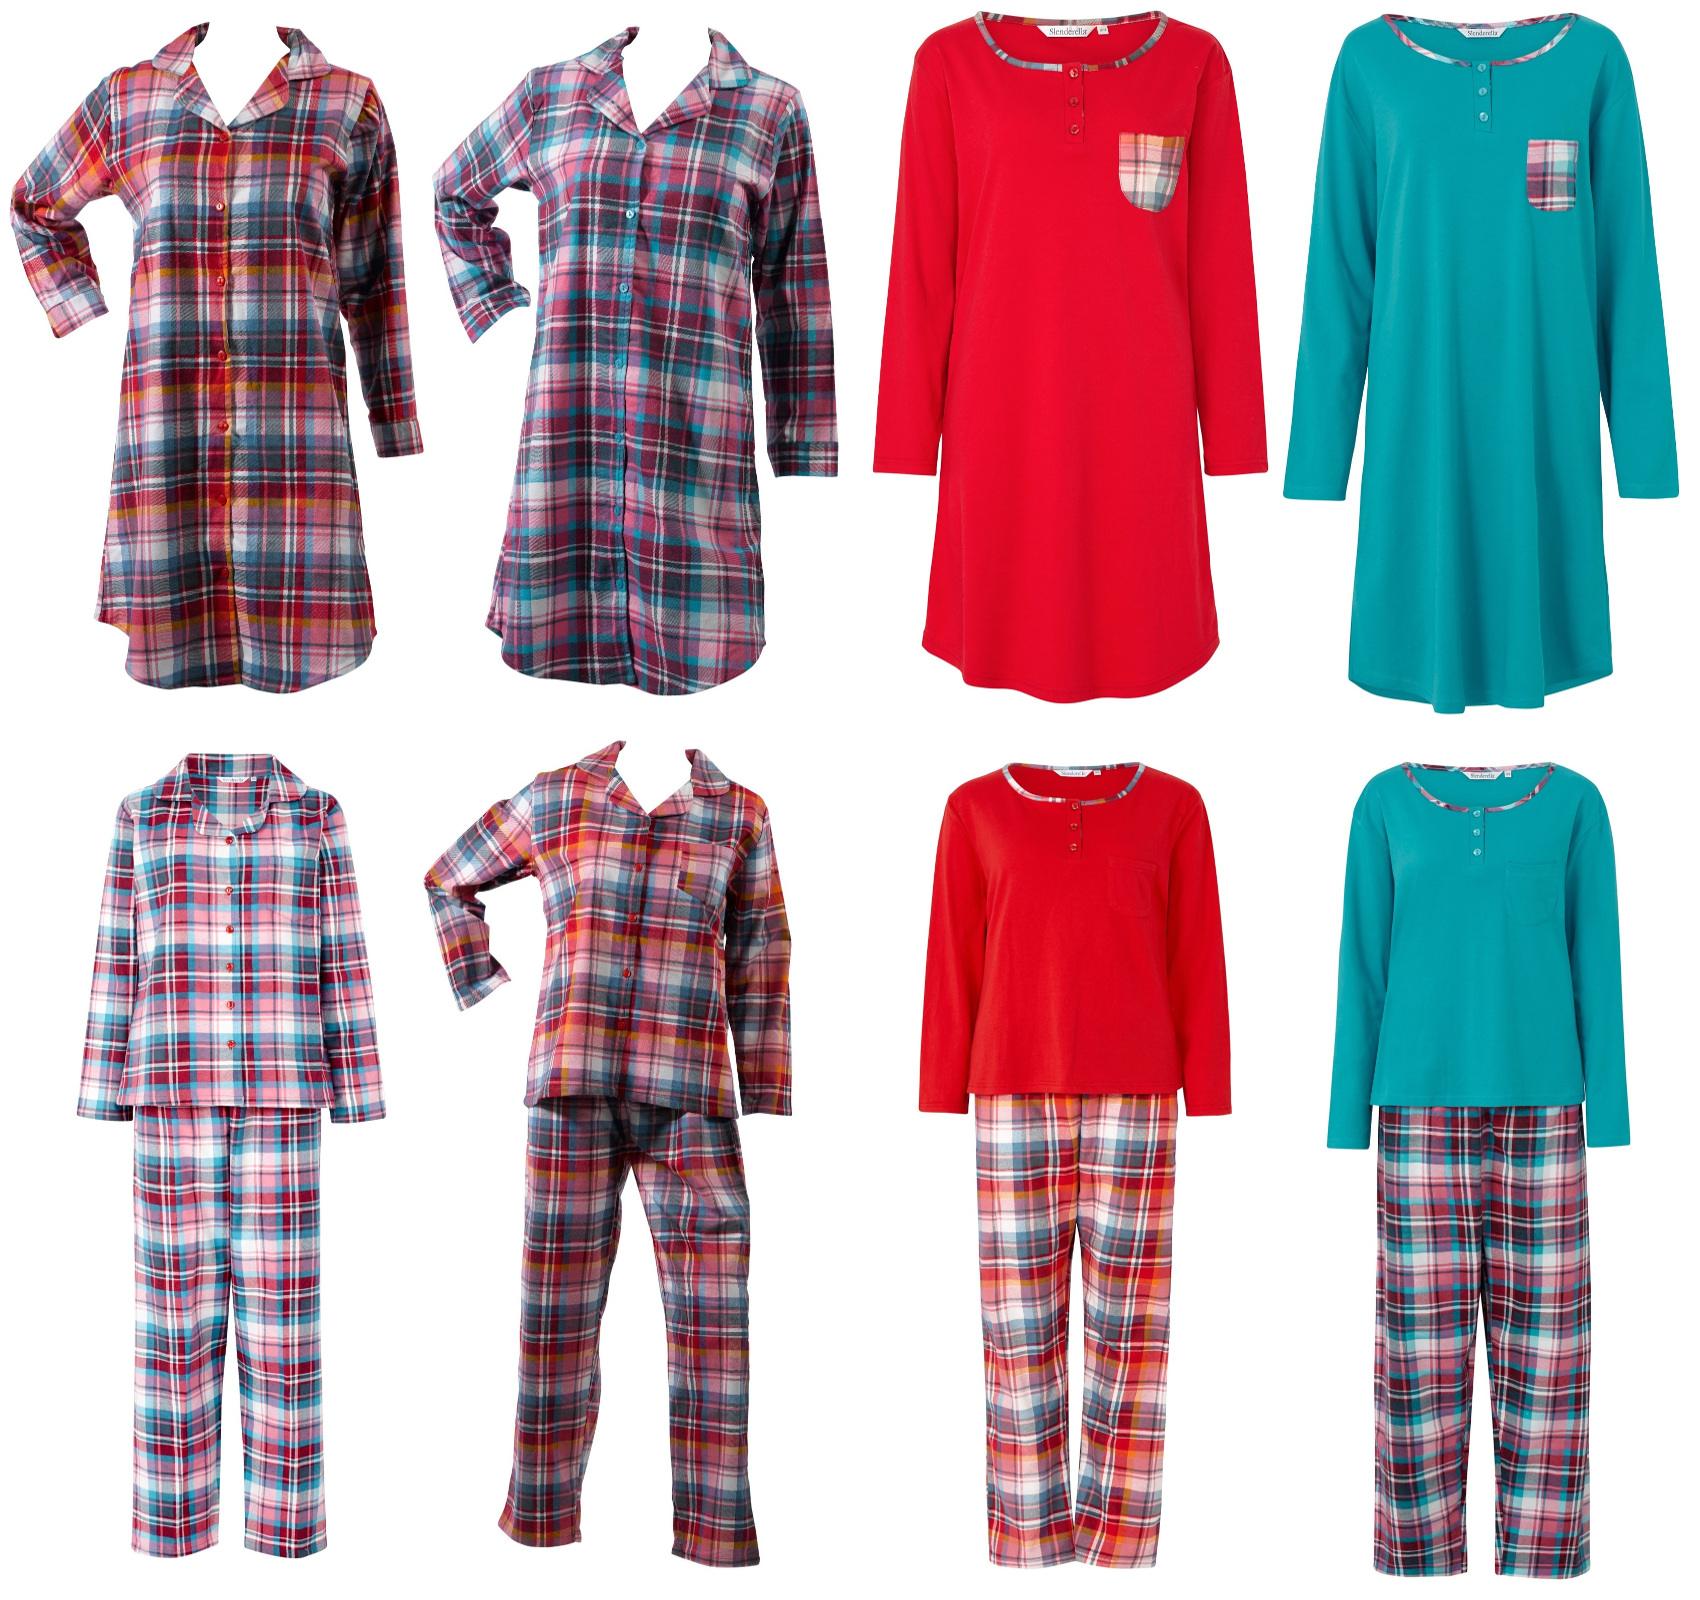 8c5bbf57dc Slenderella Nightdress Nightshirt or Pyjamas 100% Cotton Tartan Check  Sleepwear